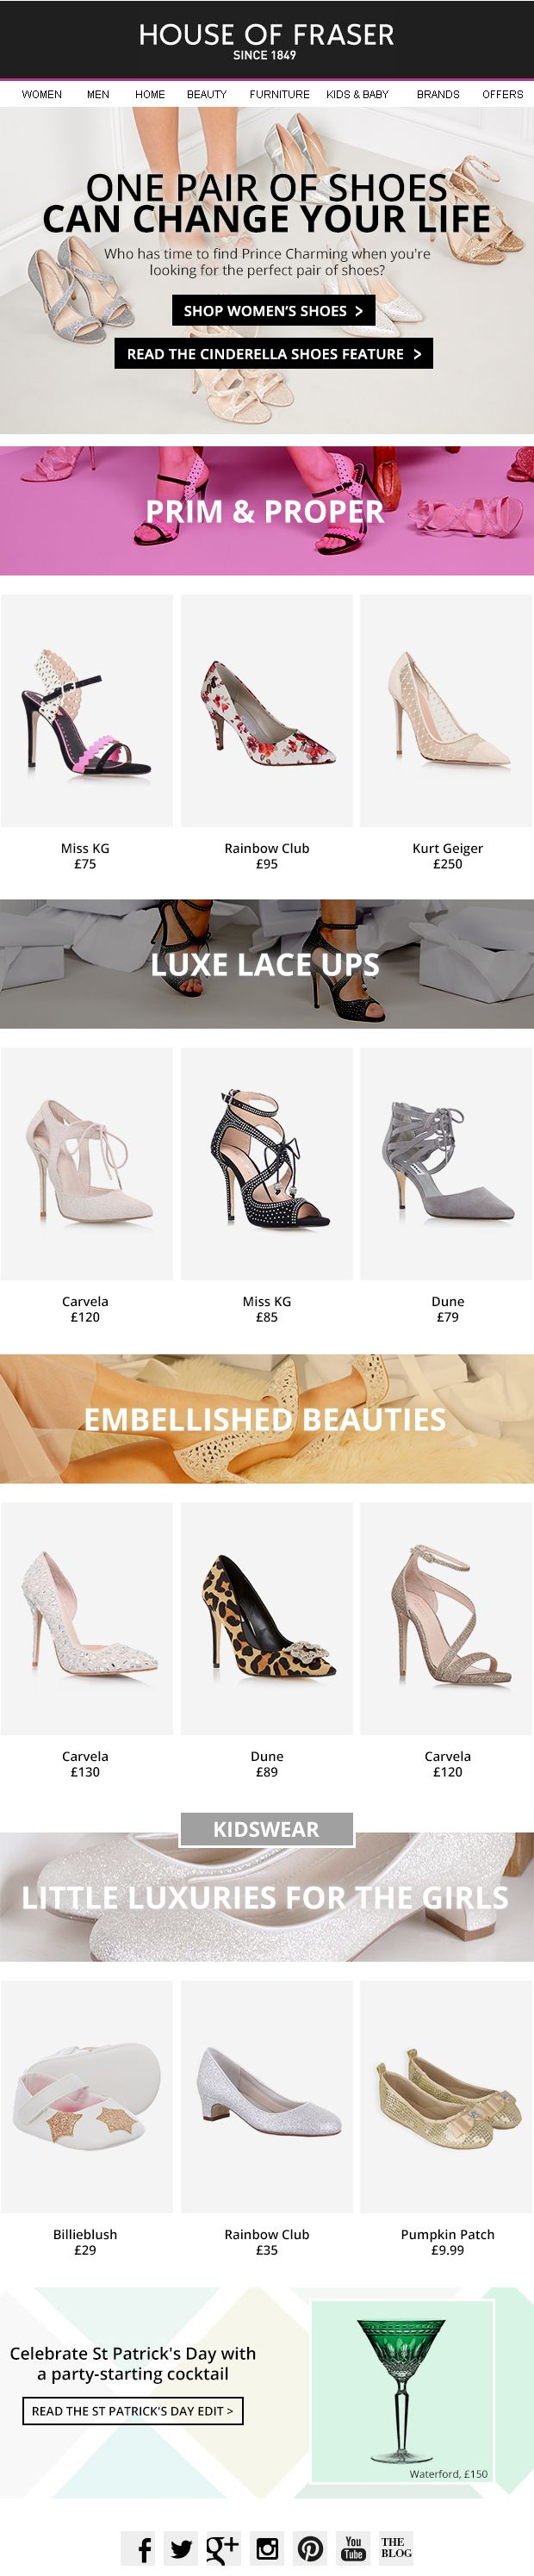 House of Fraser: SHOES. Embellished or patterned? Luxe or lace? Indulge your Cinderella fantasy